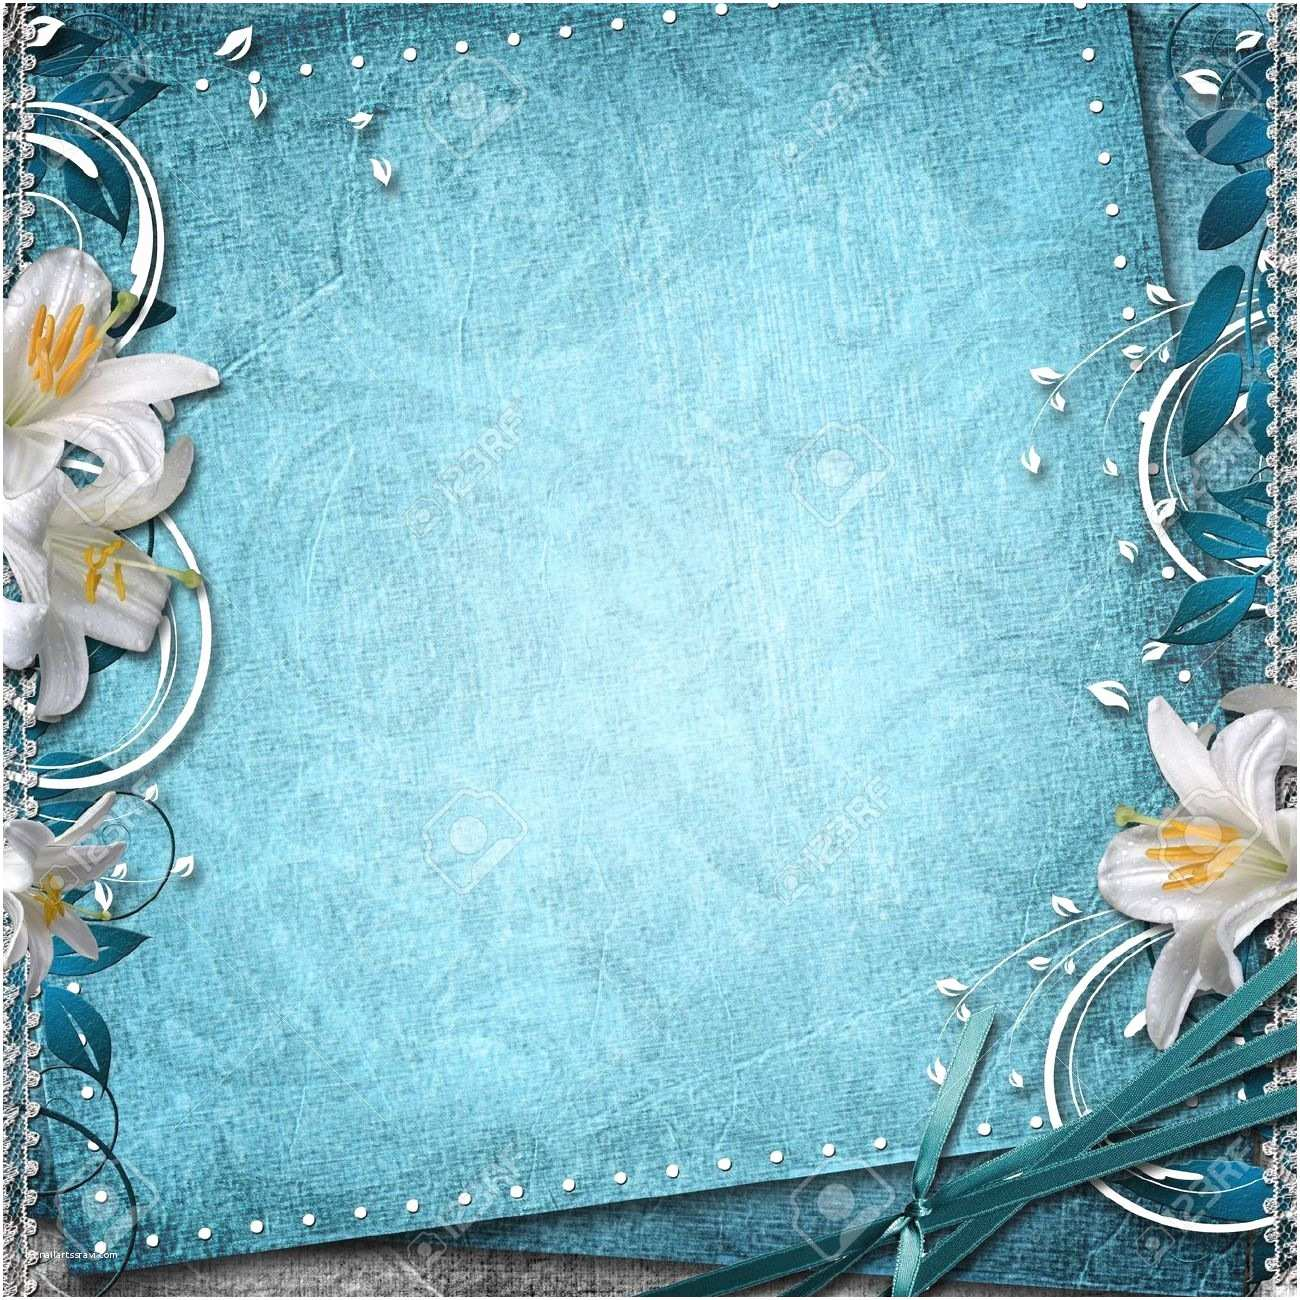 Background Designs for Wedding Invitations Free Wedding Background Paper Free